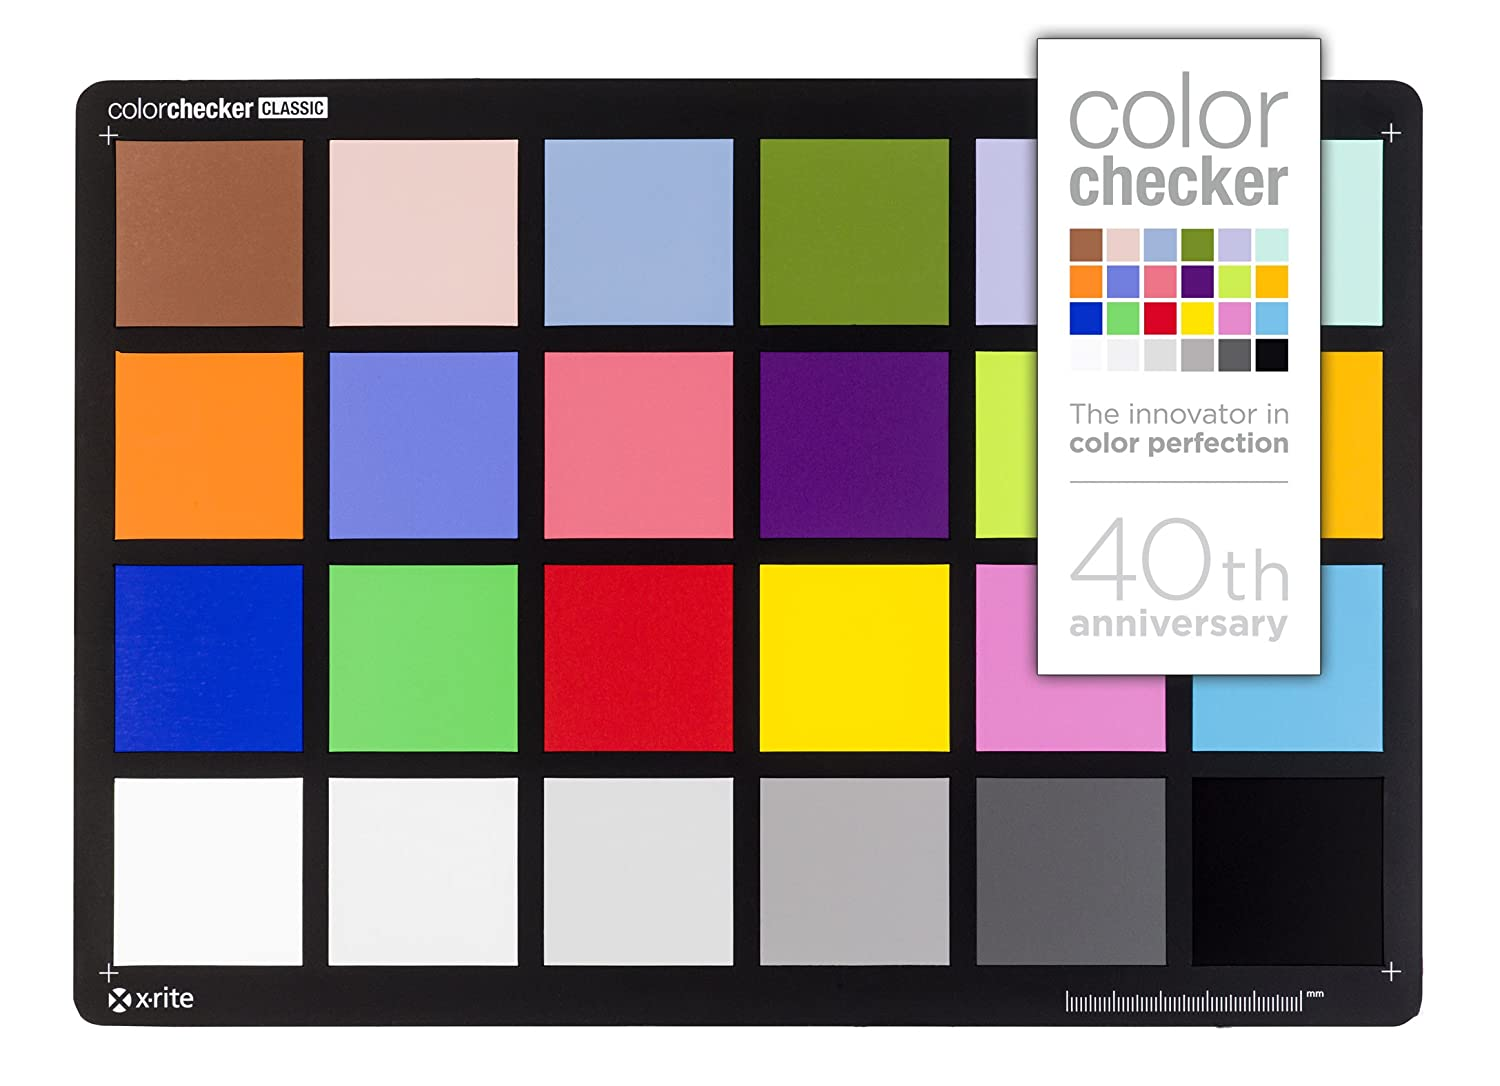 Color test online x rite - Buy X Rite Msccc Colorchecker Classic Online At Low Price In India X Rite Camera Reviews Ratings Amazon In